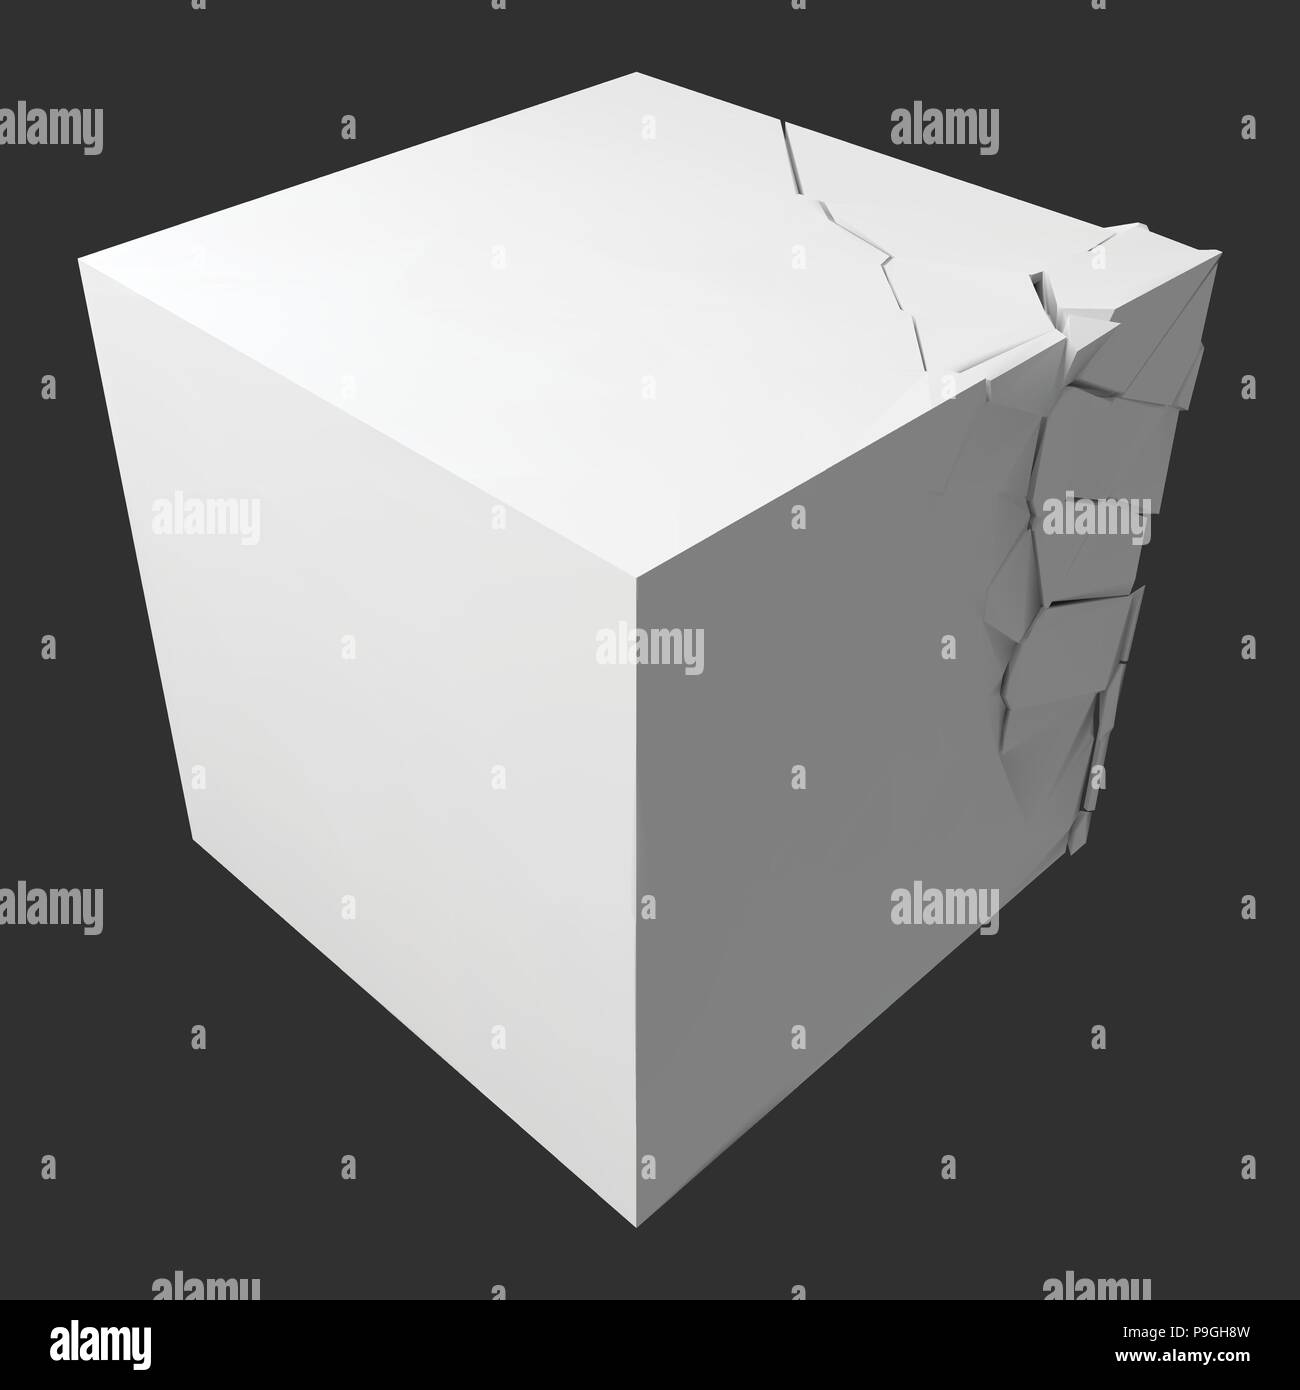 vector illustration of exploding cube - Stock Vector